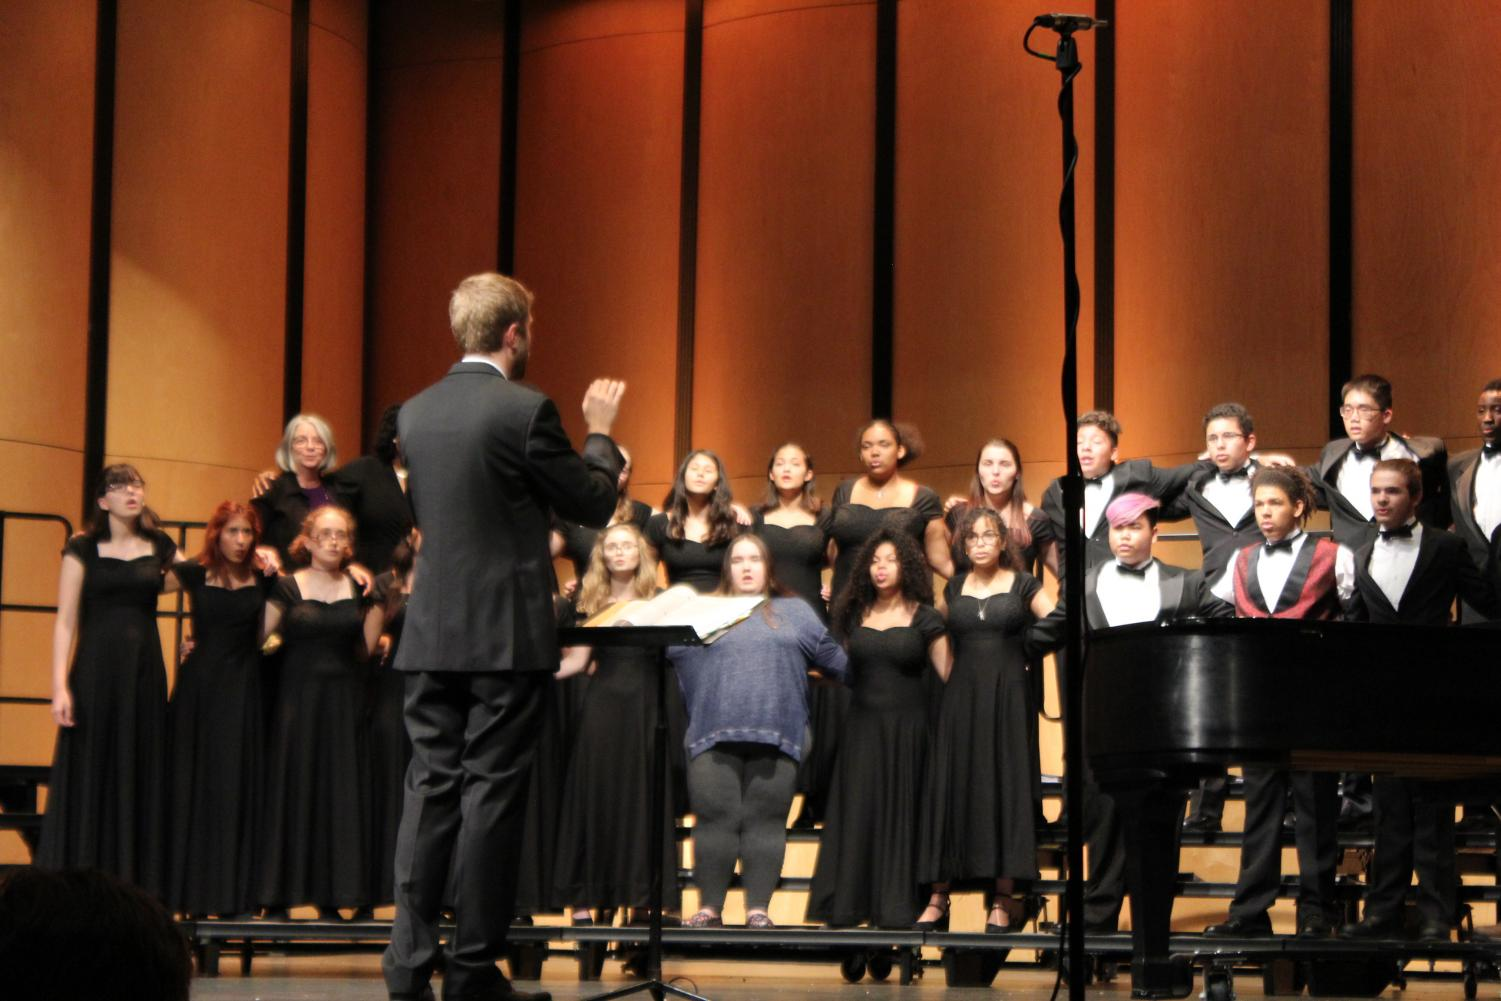 Mr. David Short leads the final performance of the choir concert as alumni join in. The alumni involved in the end performance was a variety of generations.